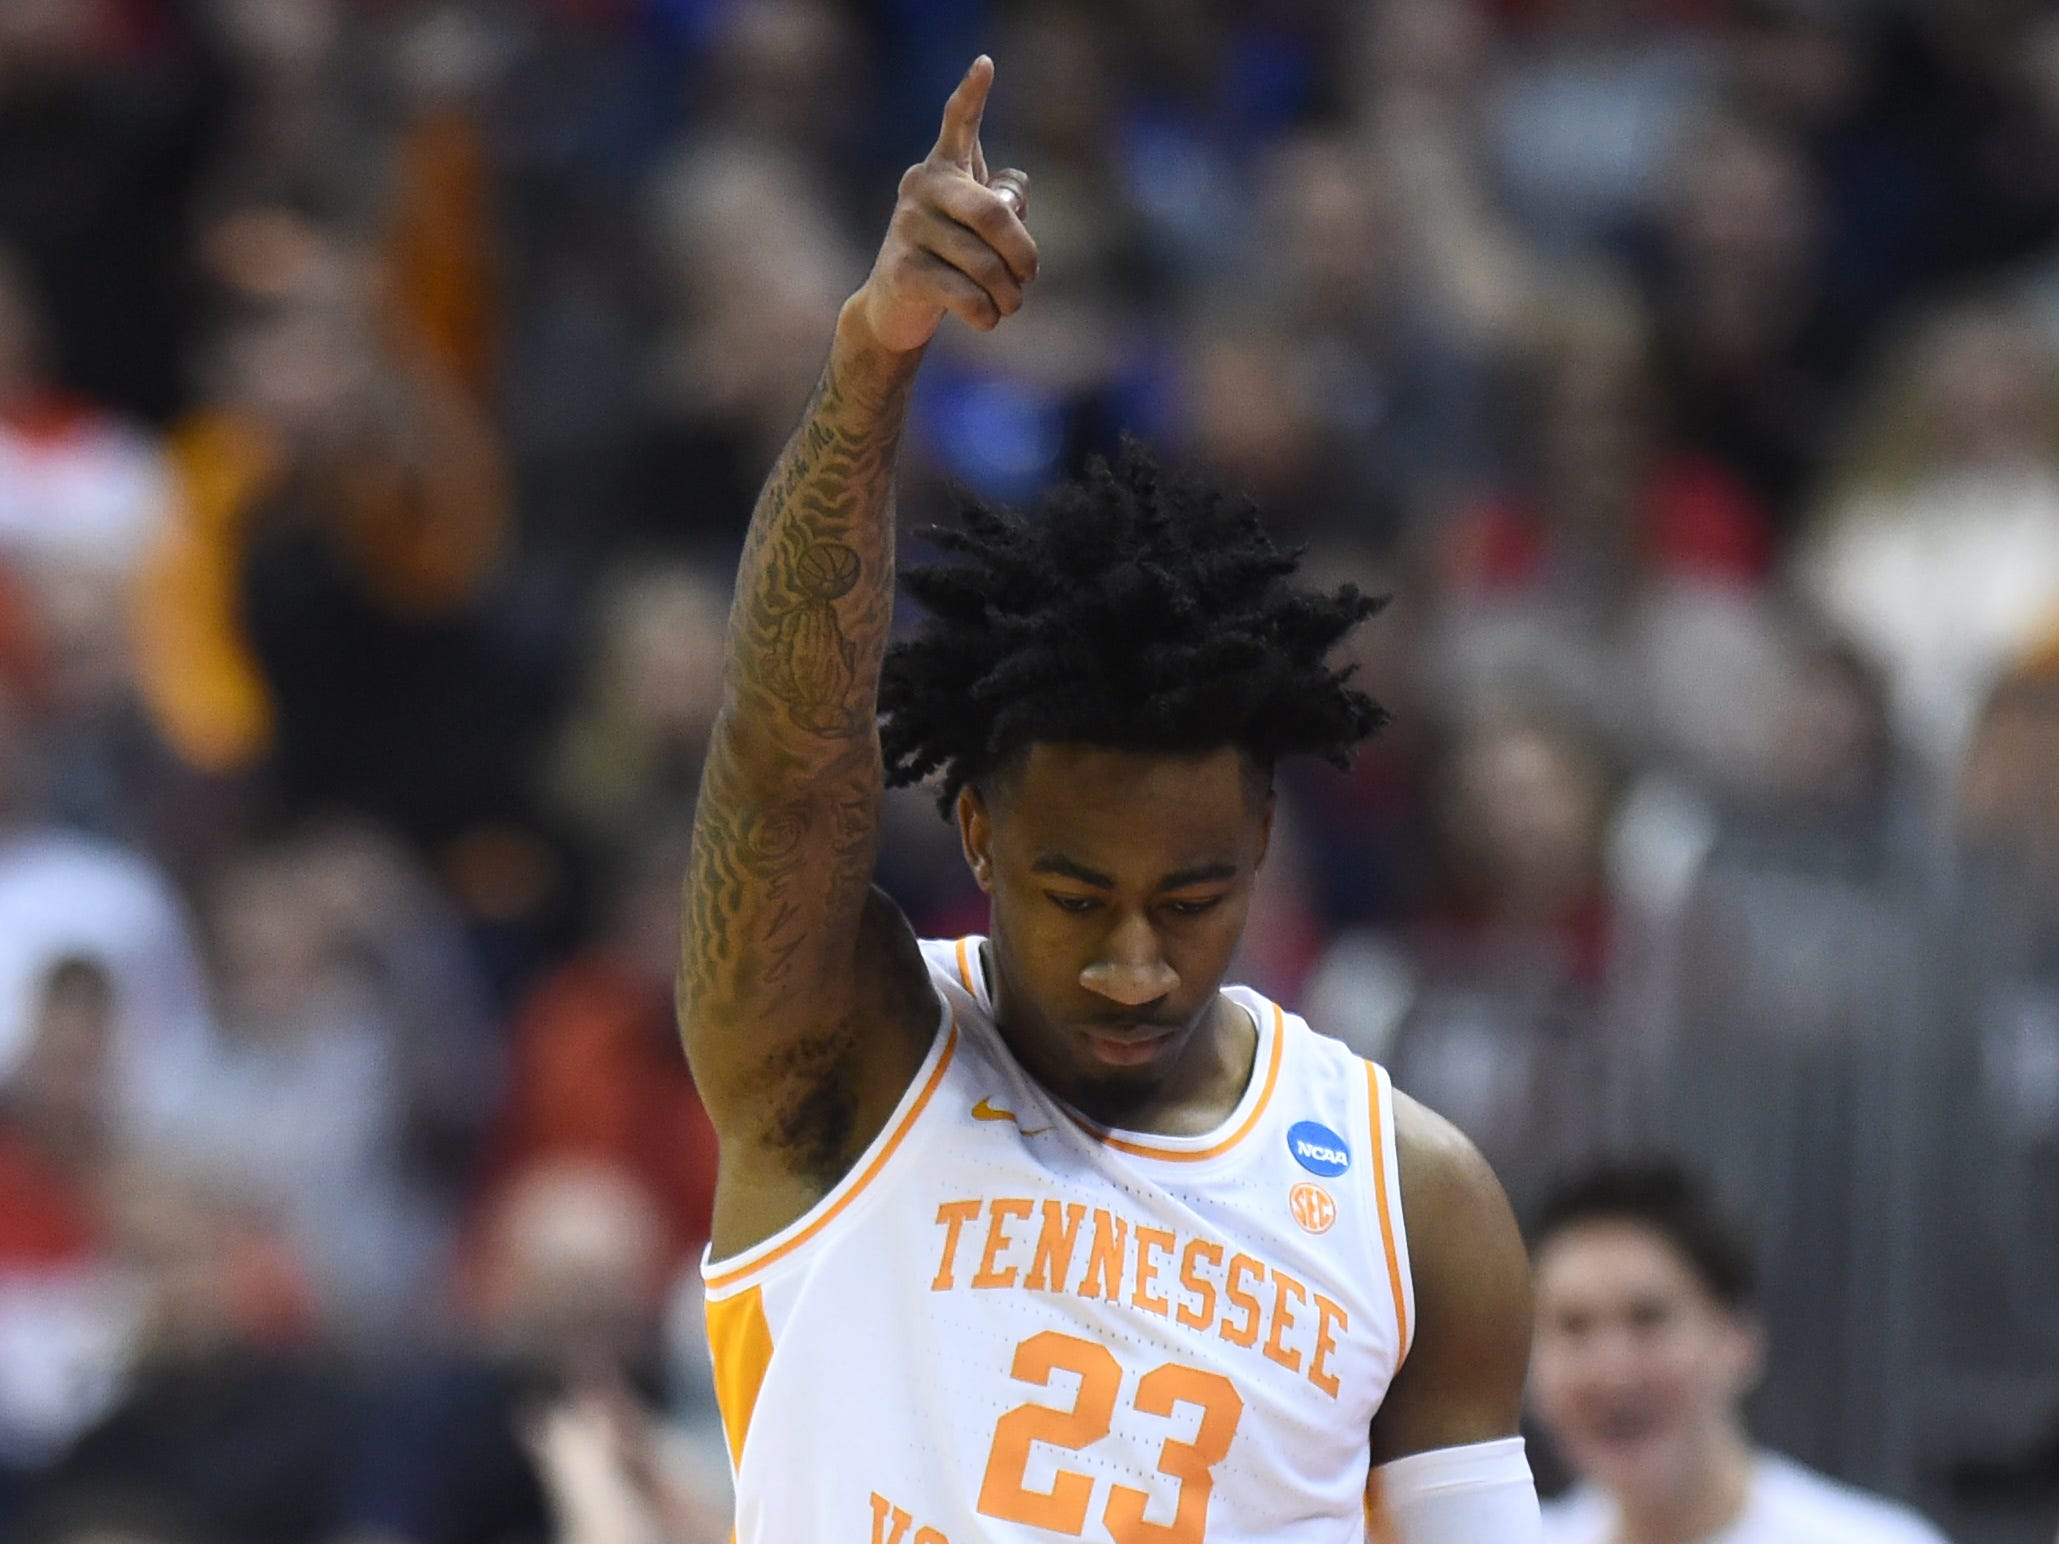 Tennessee guard Jordan Bowden (23) celebrates a call against Colgate during their first-round game of the NCAA Tournament at Nationwide Arena in Columbus, Ohio, on Friday, March 22, 2019.